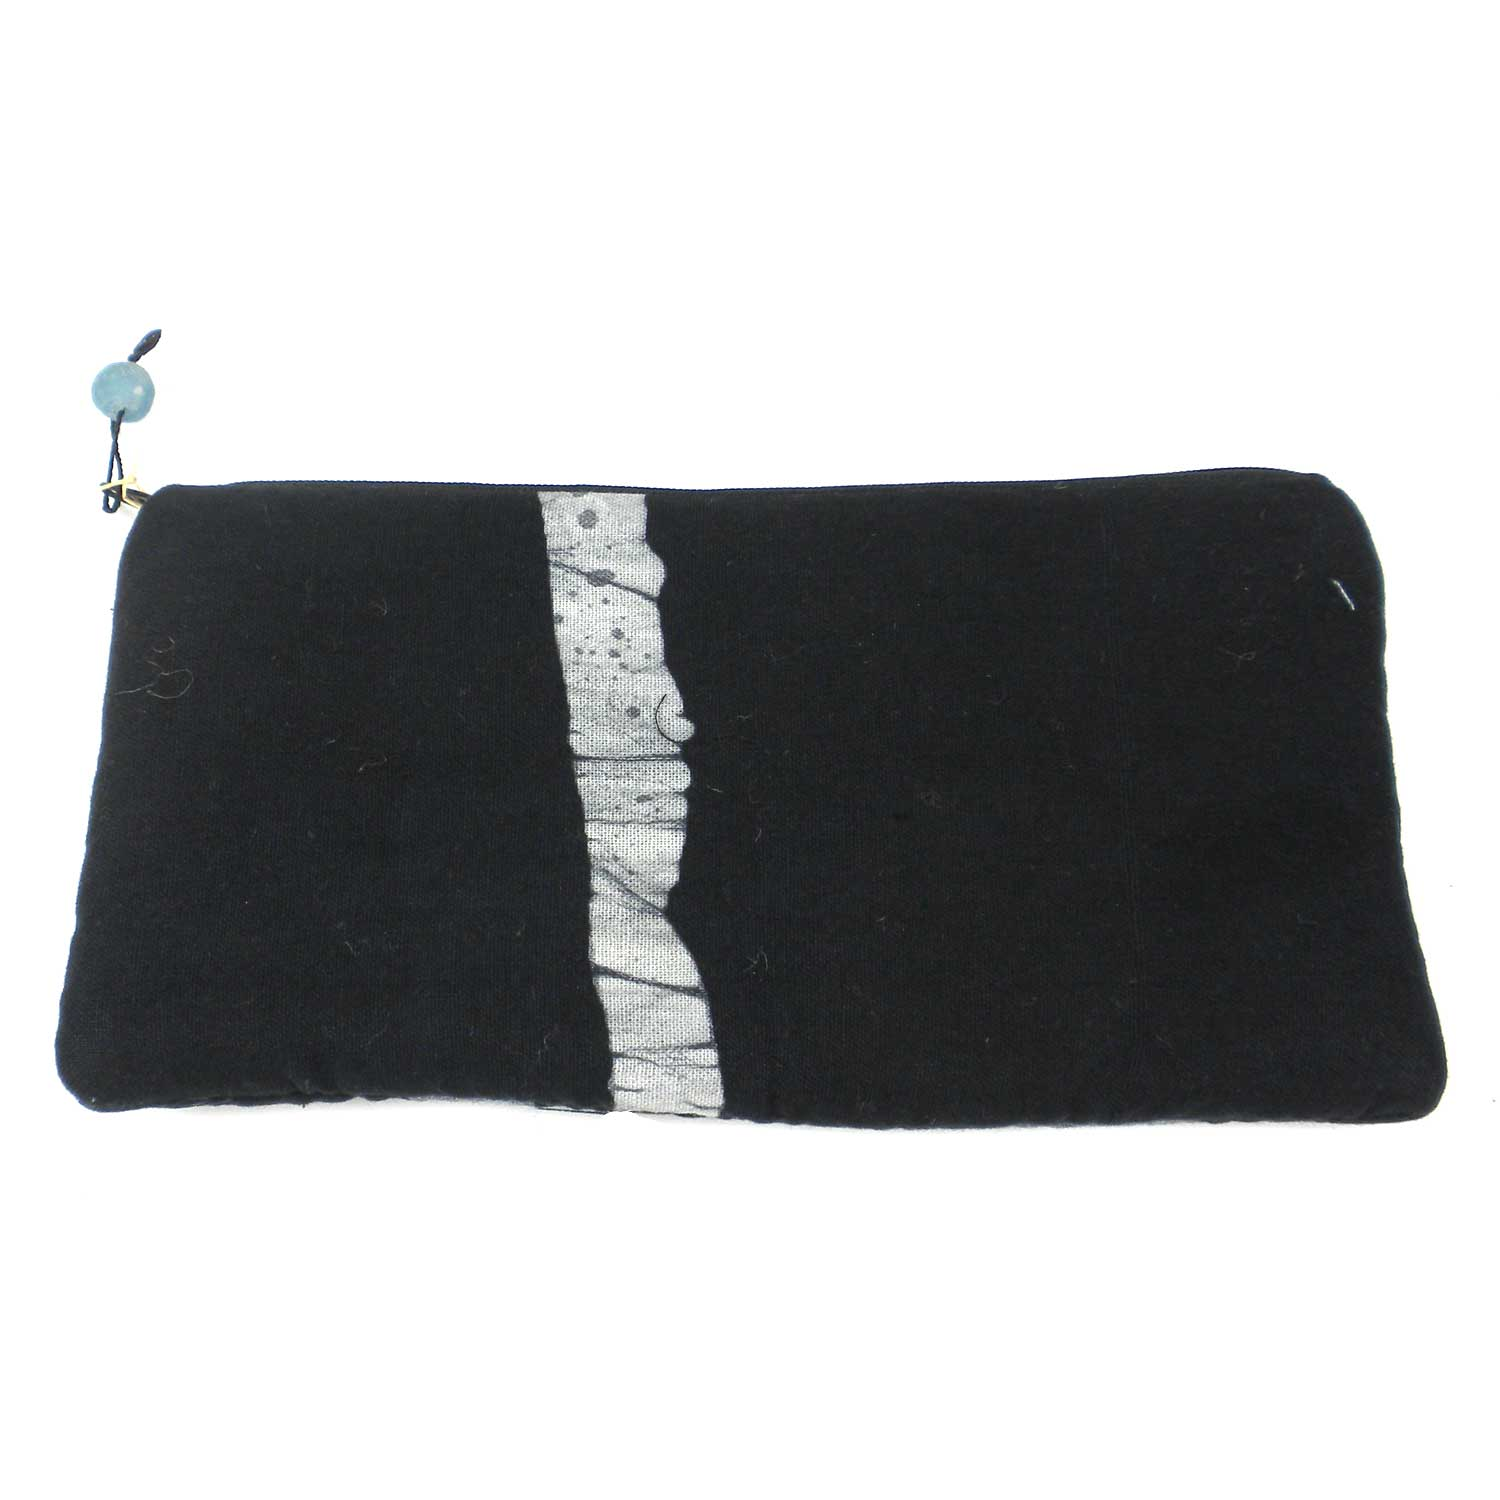 Batiked Clutch Purse - Black